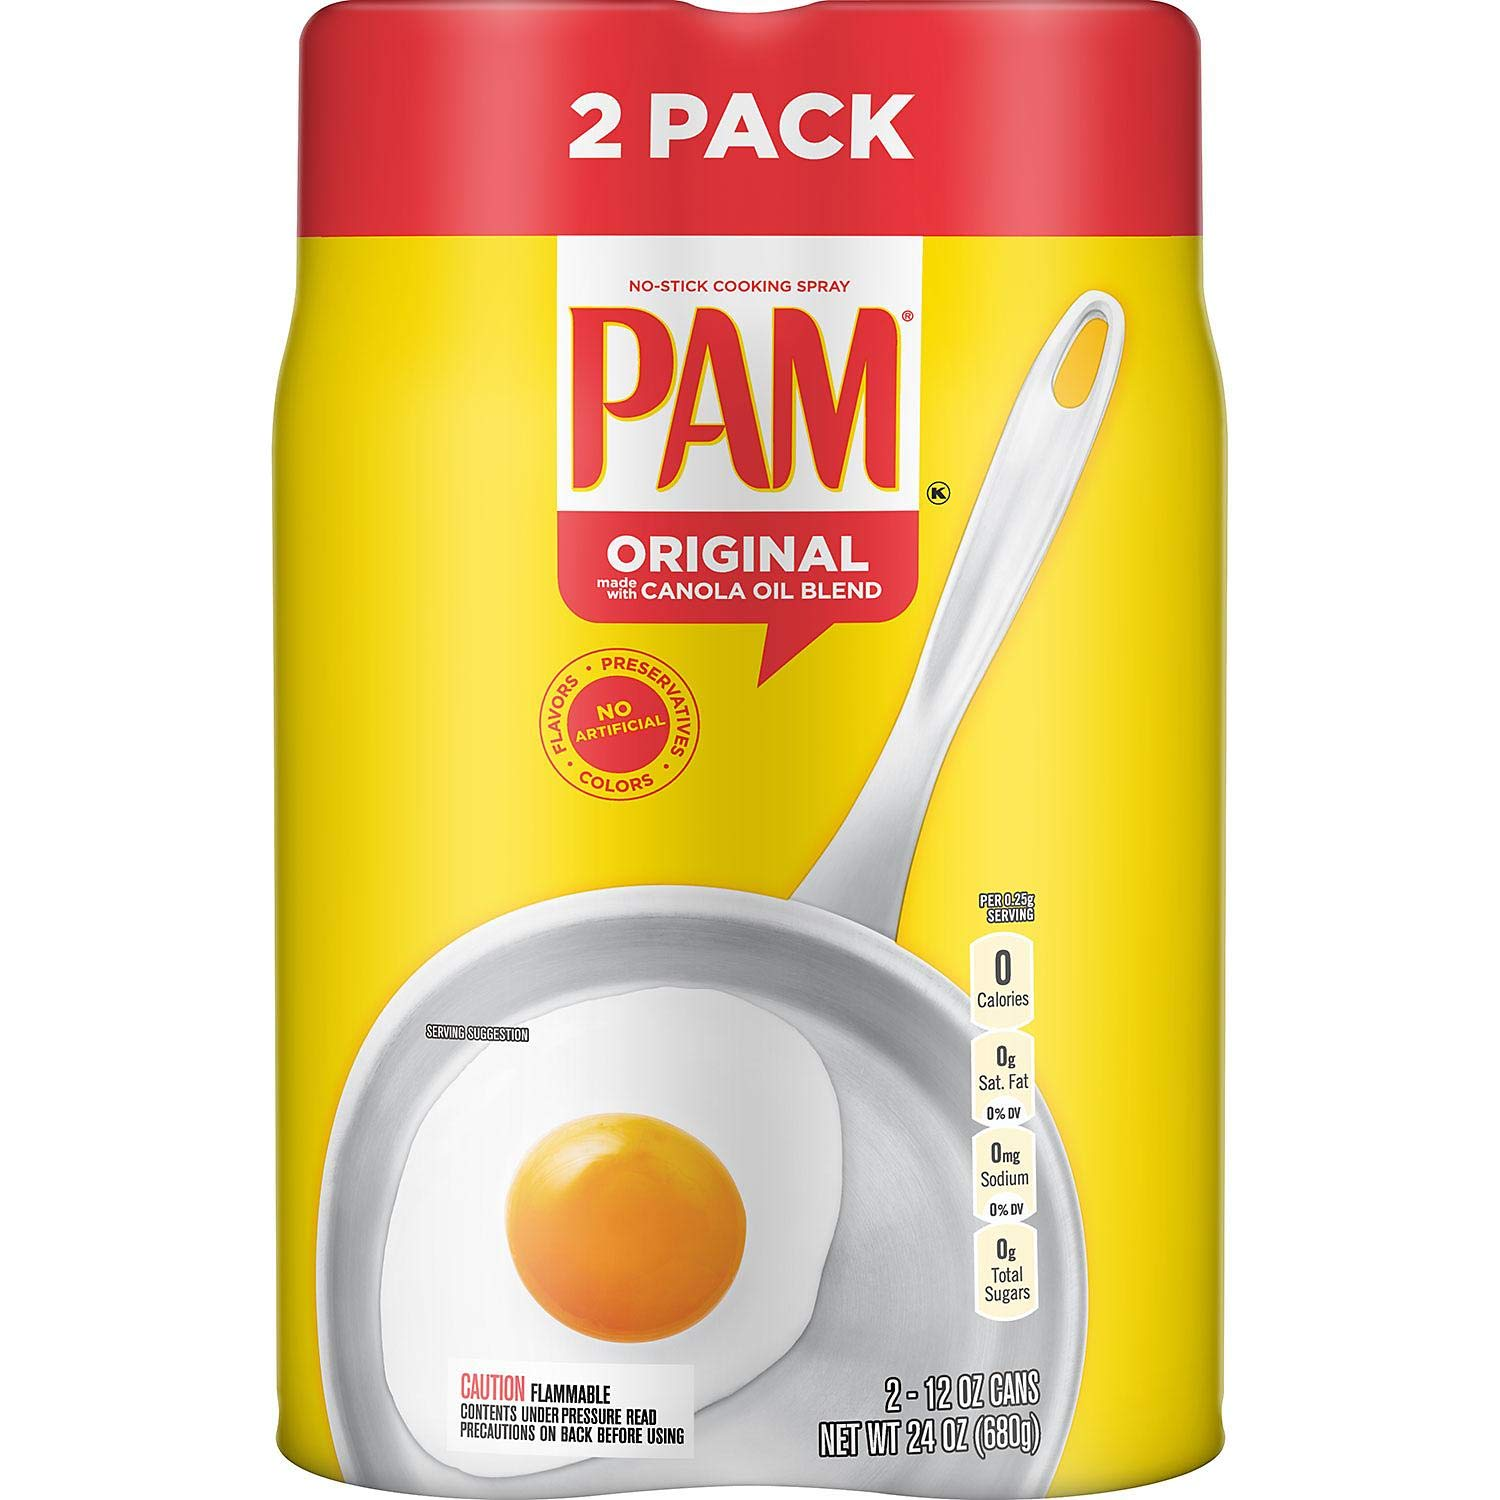 Pam Original No-Stick Raleigh Mall Cheap mail order shopping Cooking Spray 100% natural Oil 2 Canola p